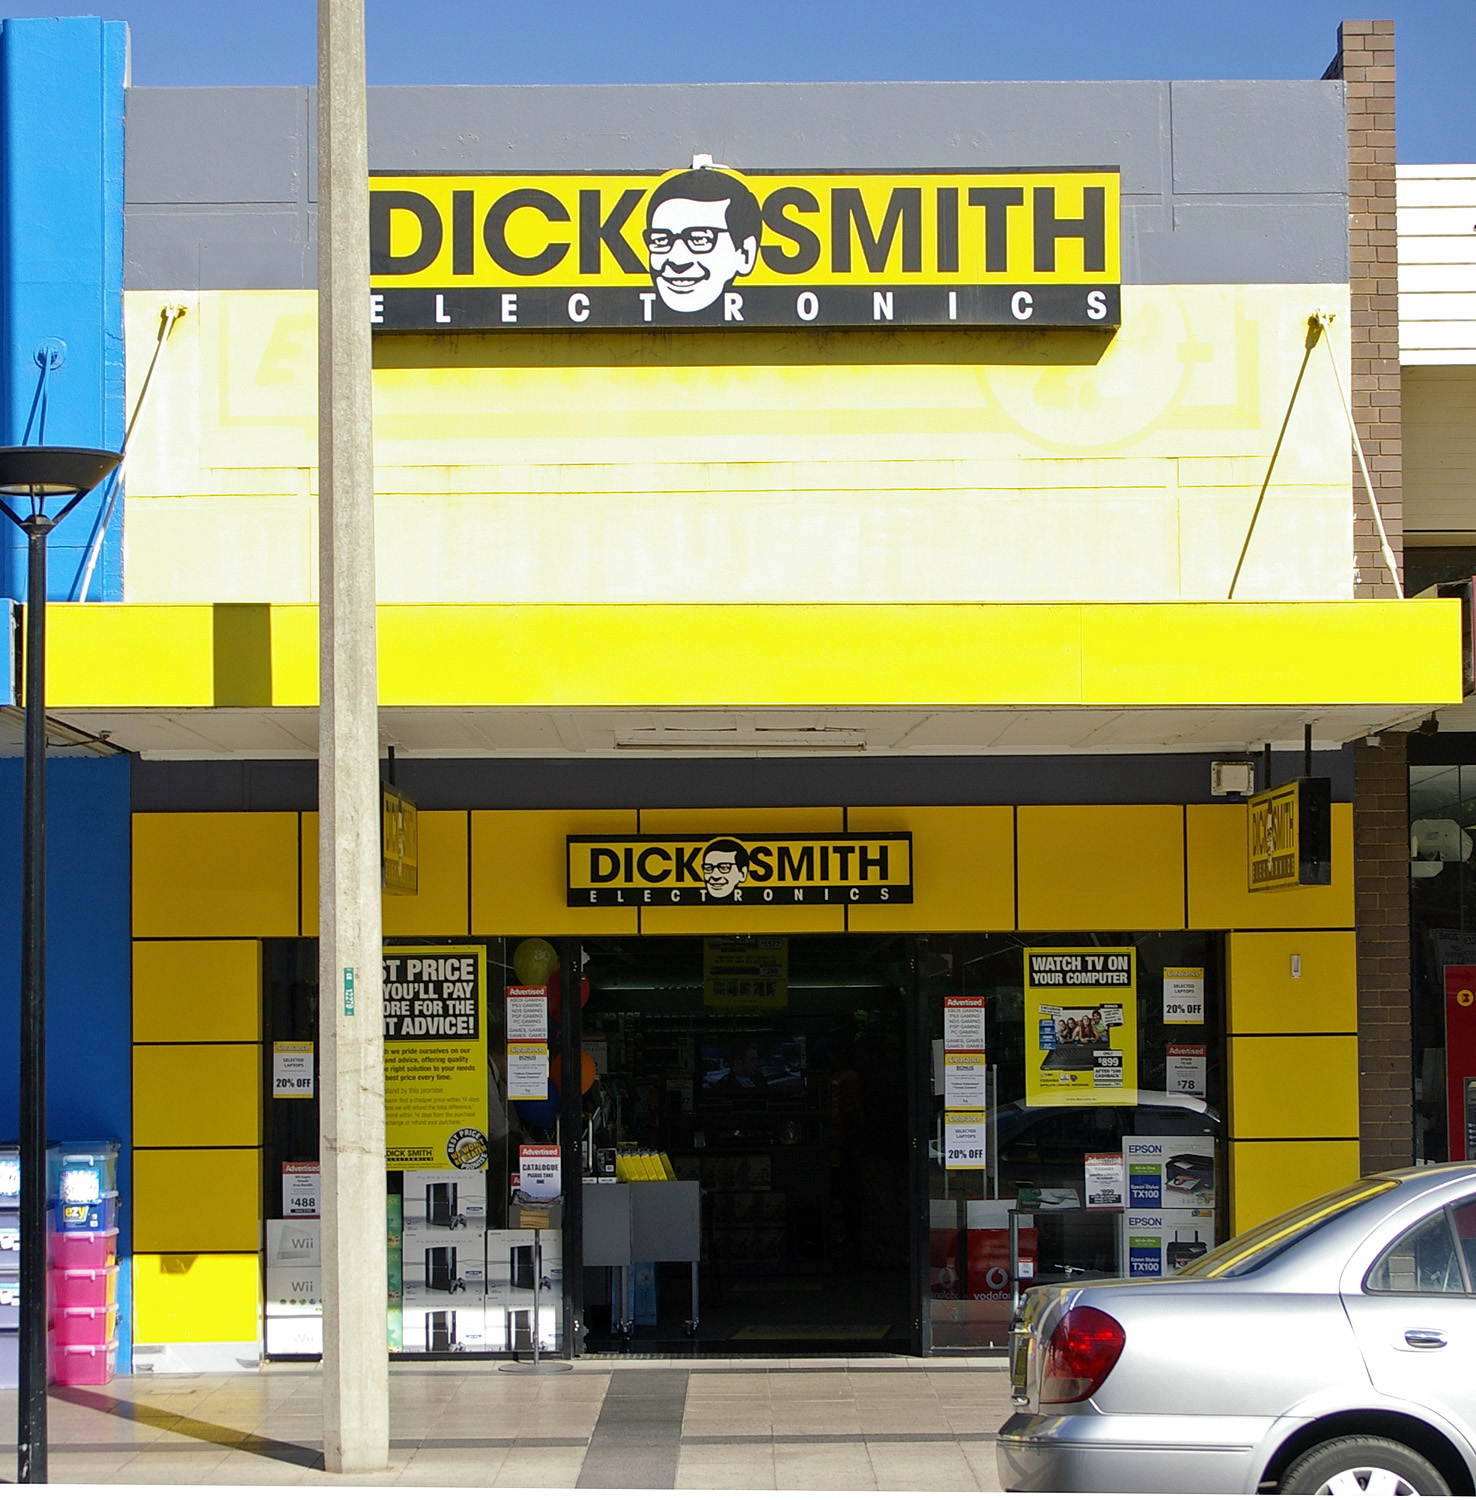 Store Banne Wiki File:dick Smith Electronics.jpg - Wikimedia Commons